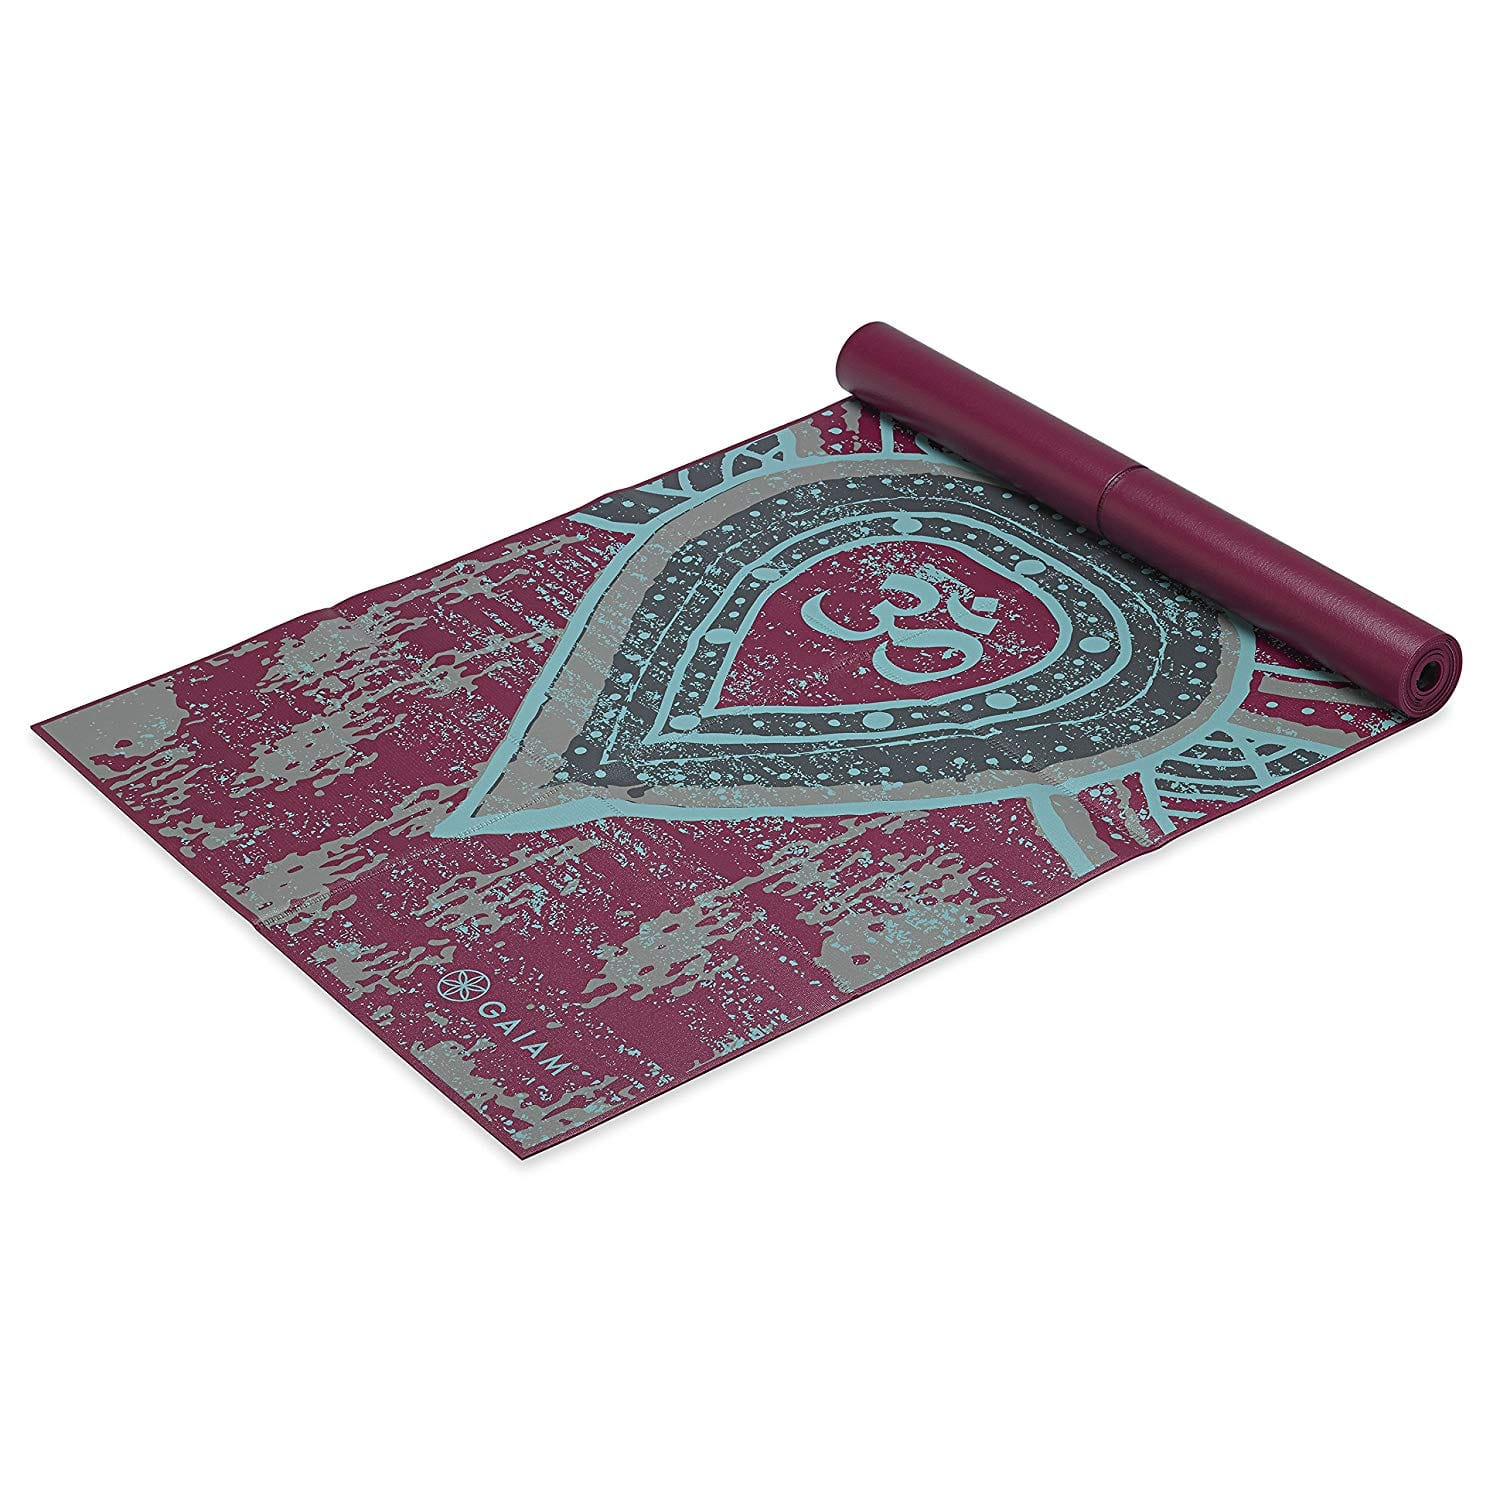 """Add-on Item: Gaiam Yoga Mat - Foldable 2mm Travel Exercise & Fitness Mat Built-in Carrying Handle (68"""" x 24"""" x 2mm Thick) - $9.59"""